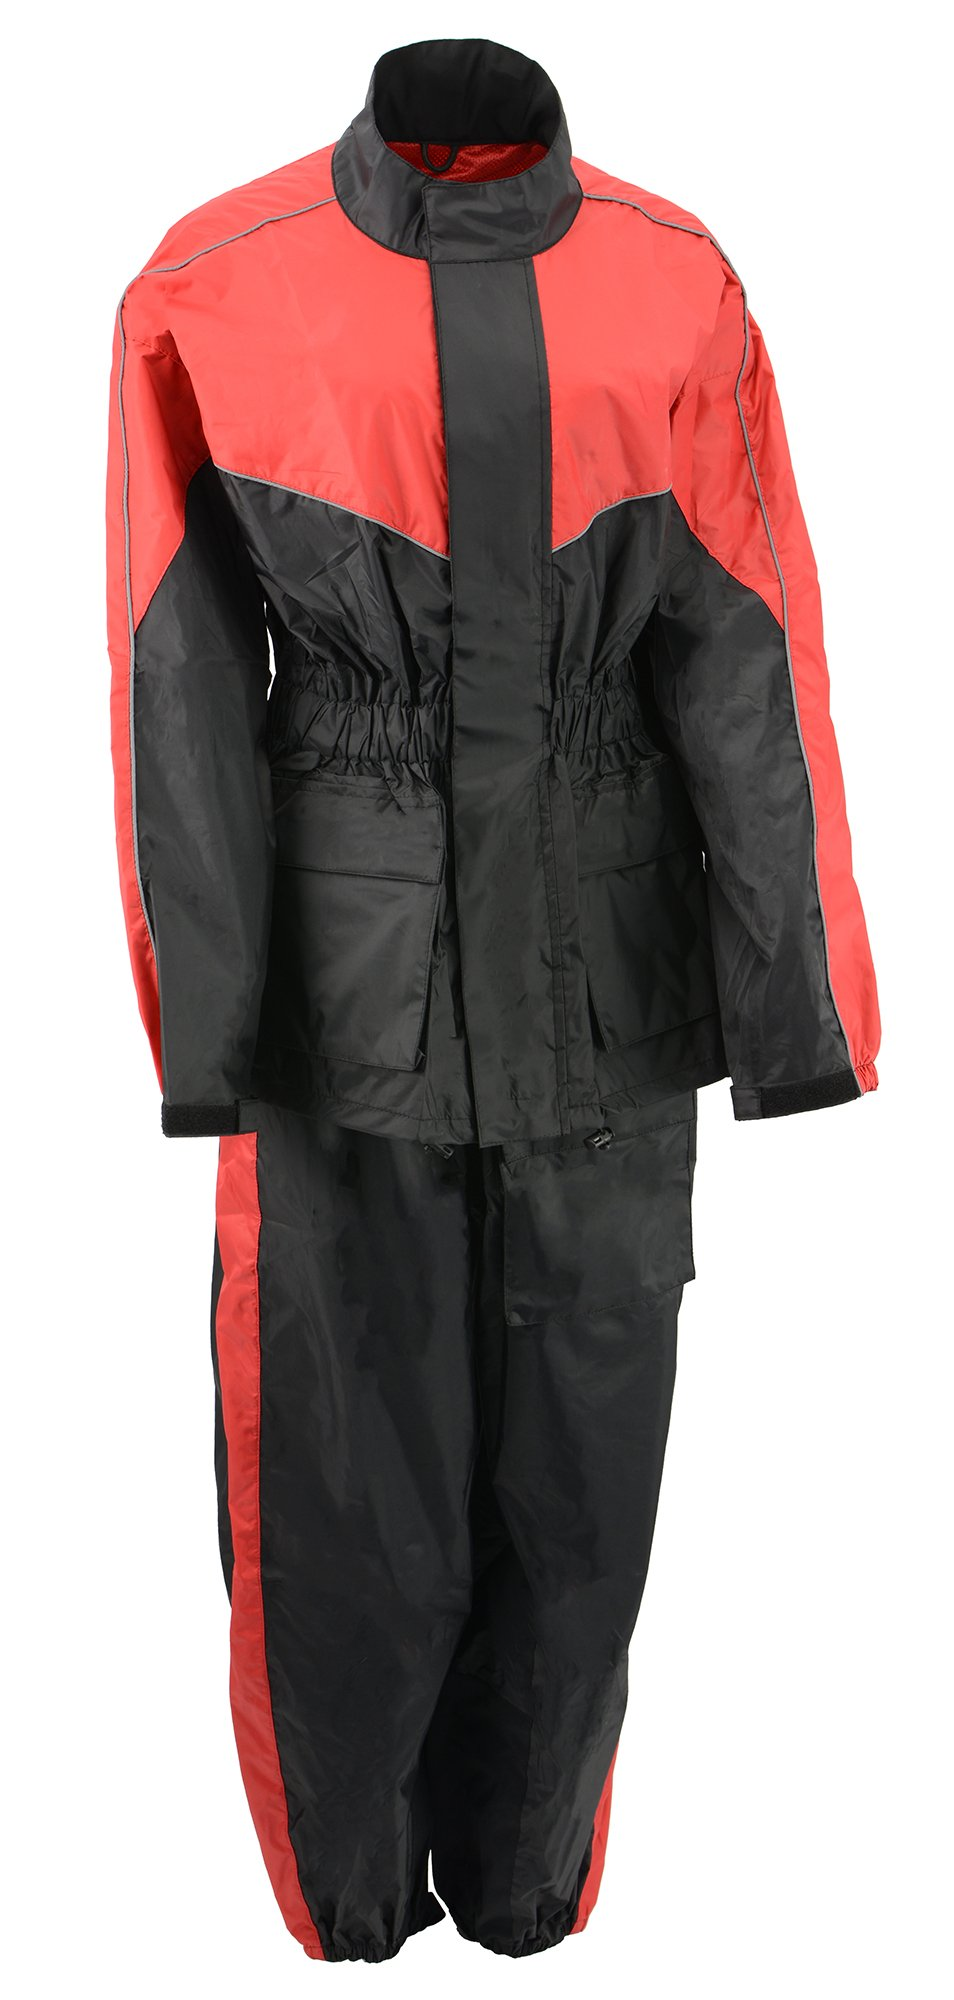 M-BOSS MOTORCYCLE APPAREL-BOS29601-BLK/RED-Unisex's two piece motorcycle rain gear.-BLK/RED-X-SMALL